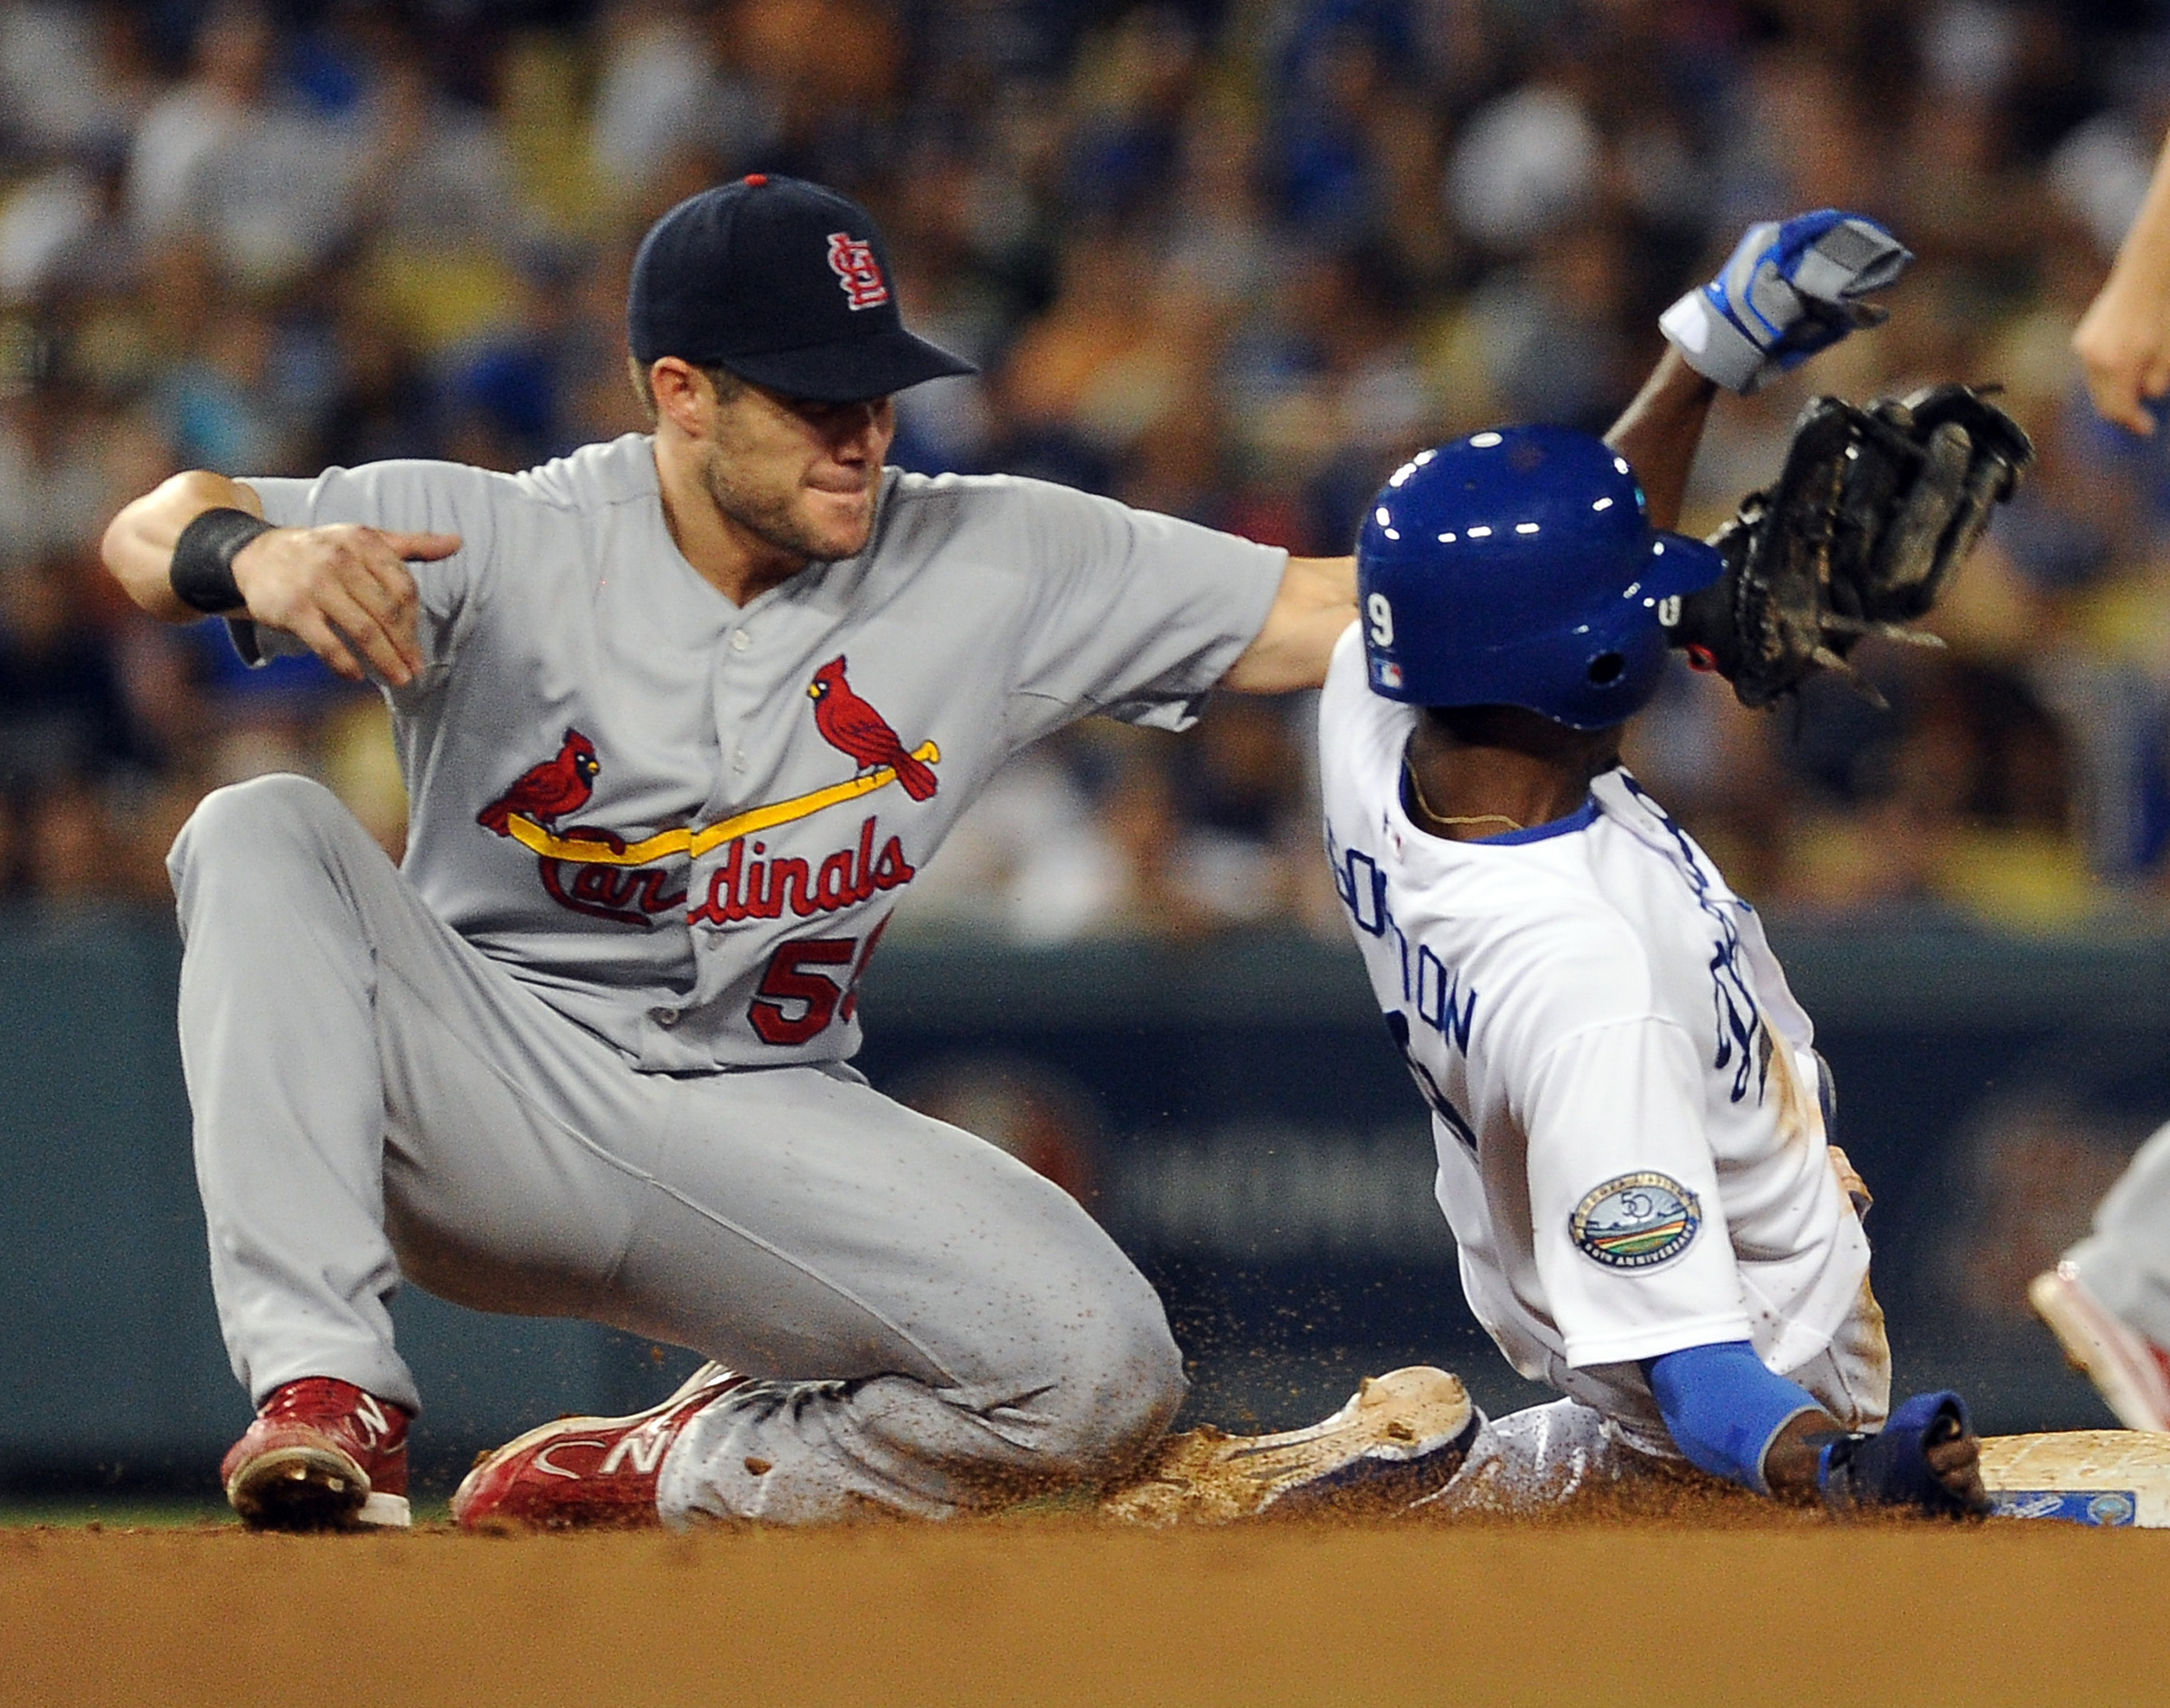 Skip Schumaker gets up close and personal with his new teammate.